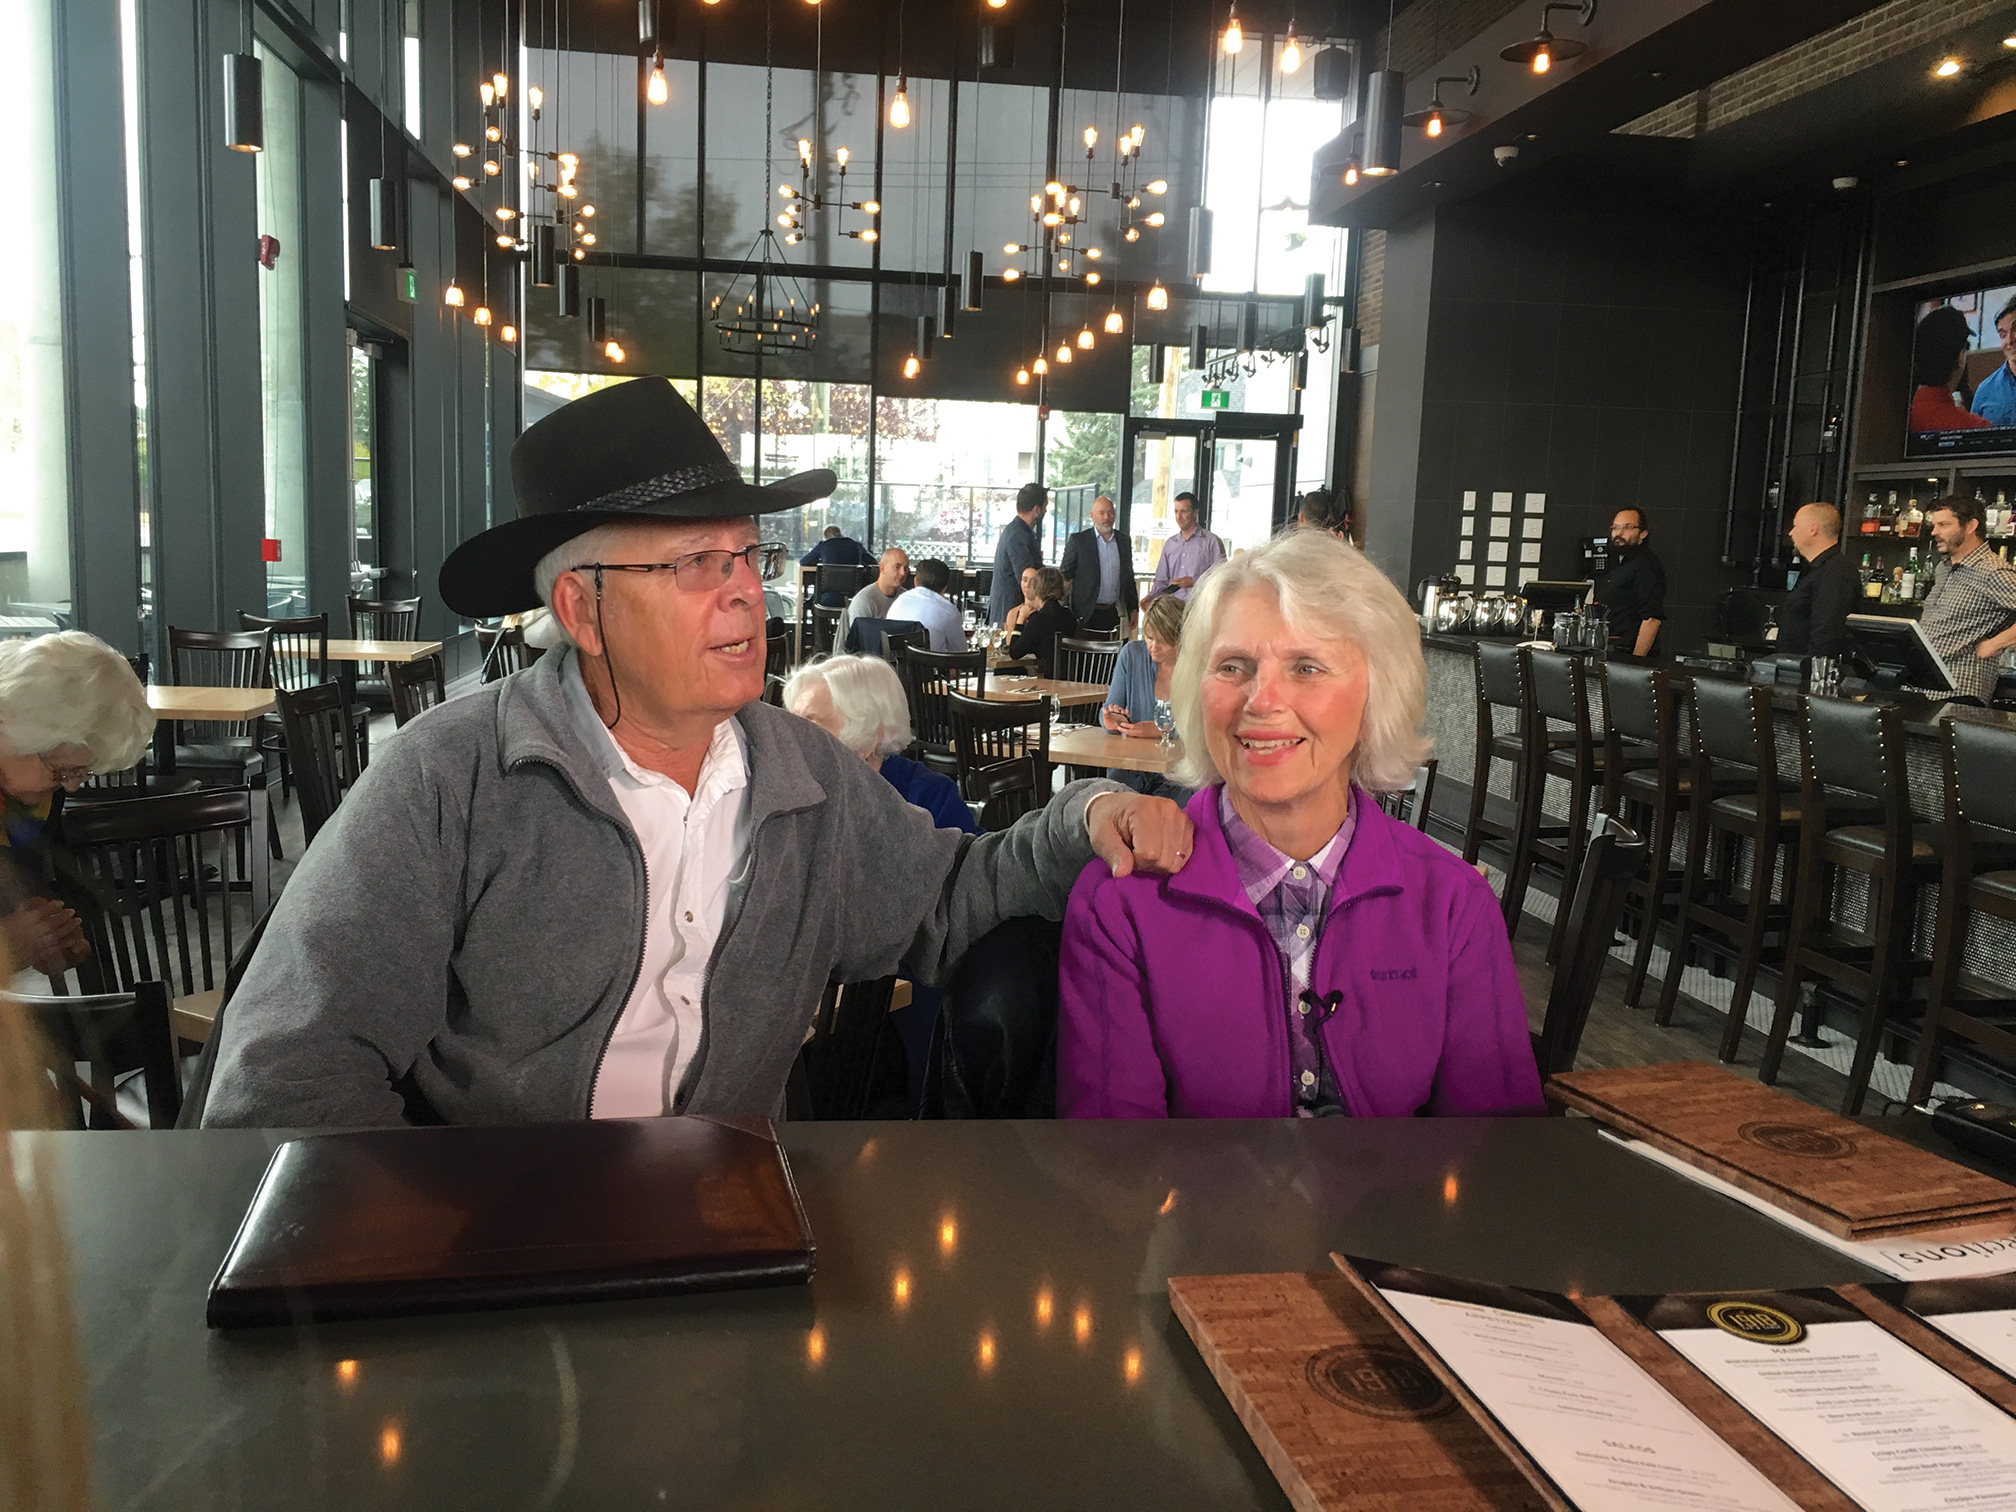 Alan Rae and Joan Connor at 1918 Tap and Table in Calgary.